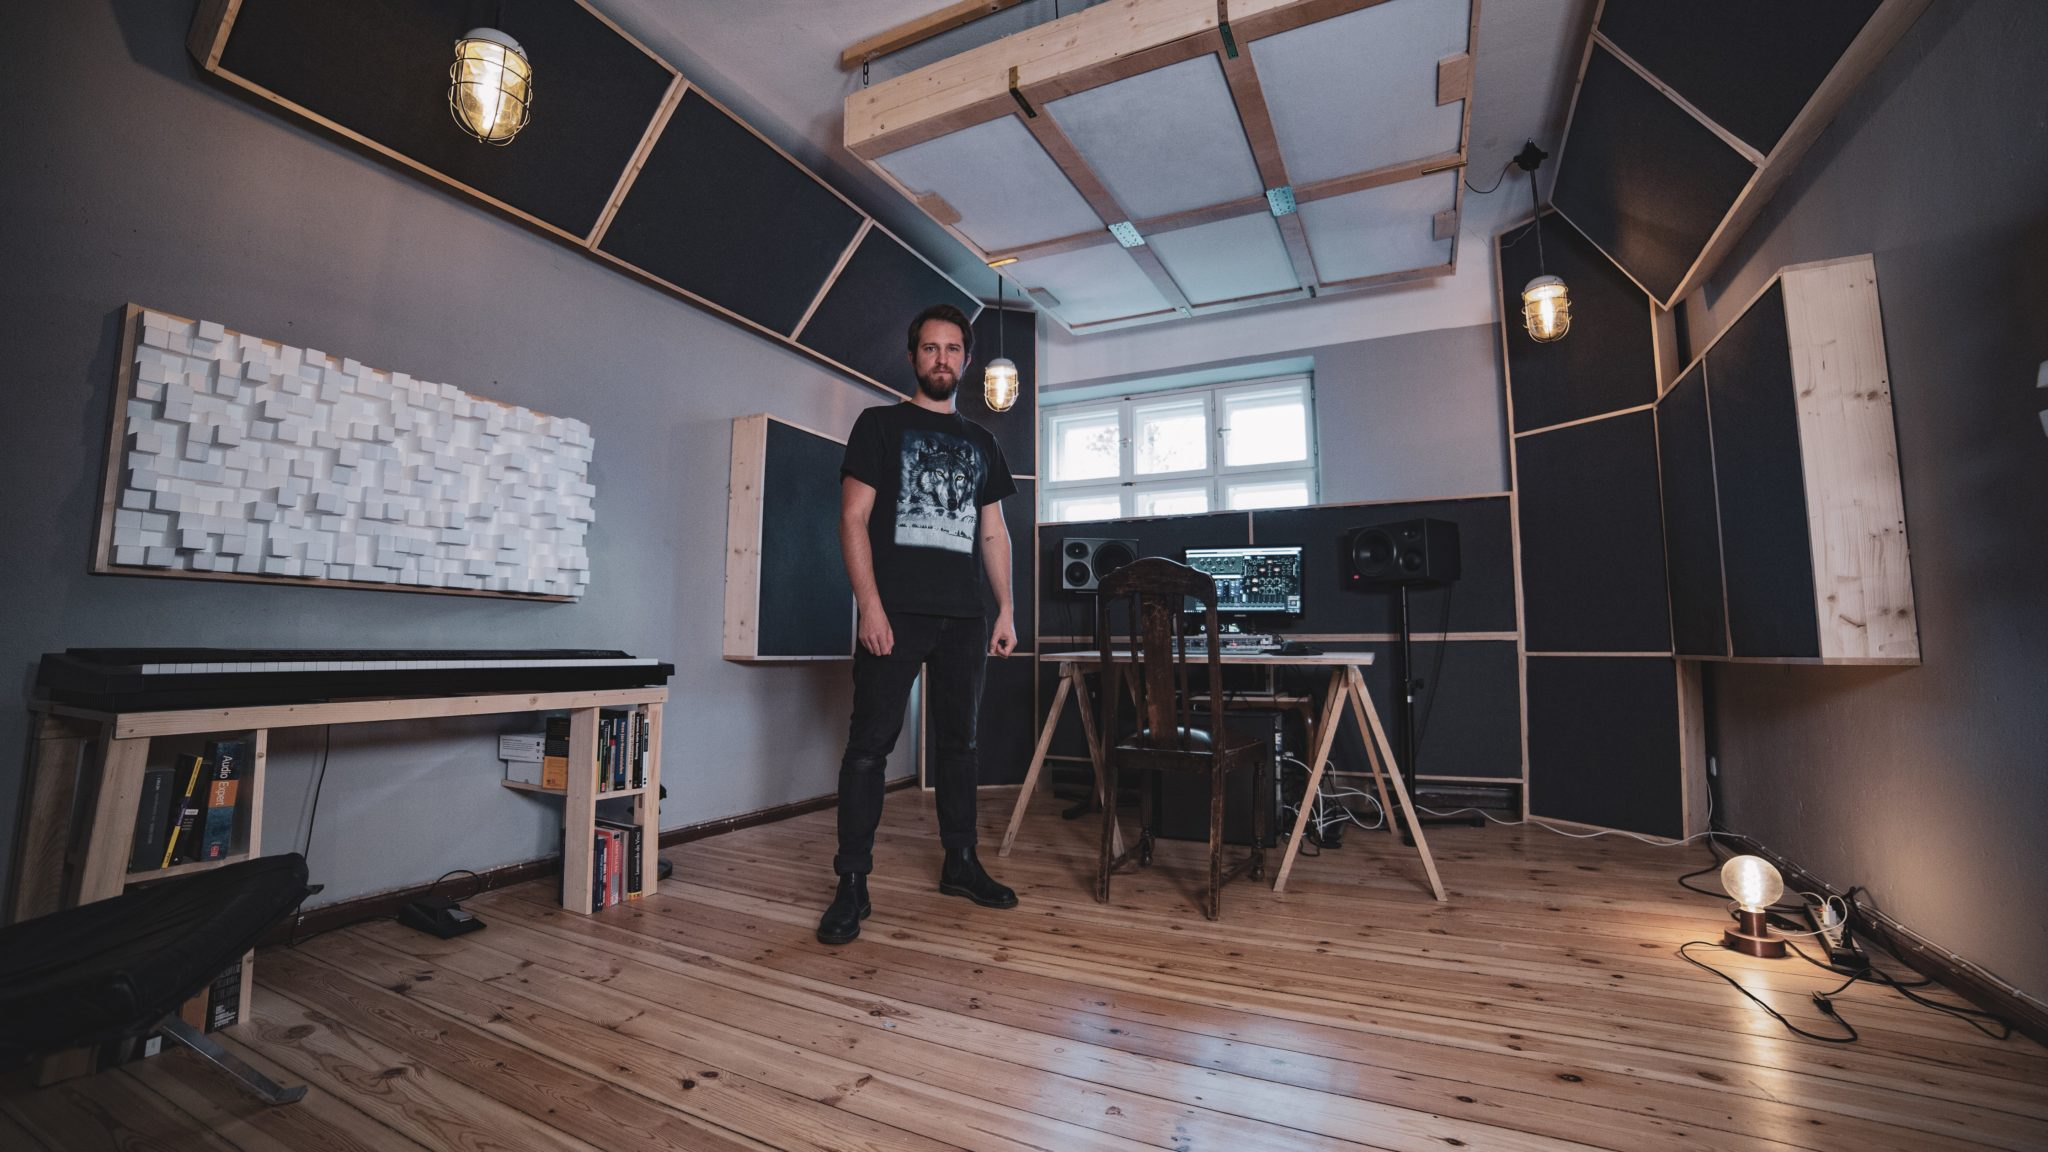 Creativity Bites: Mixing Engineer & dBs Music Tutor Philip Röder on How to Build Your Own Studio